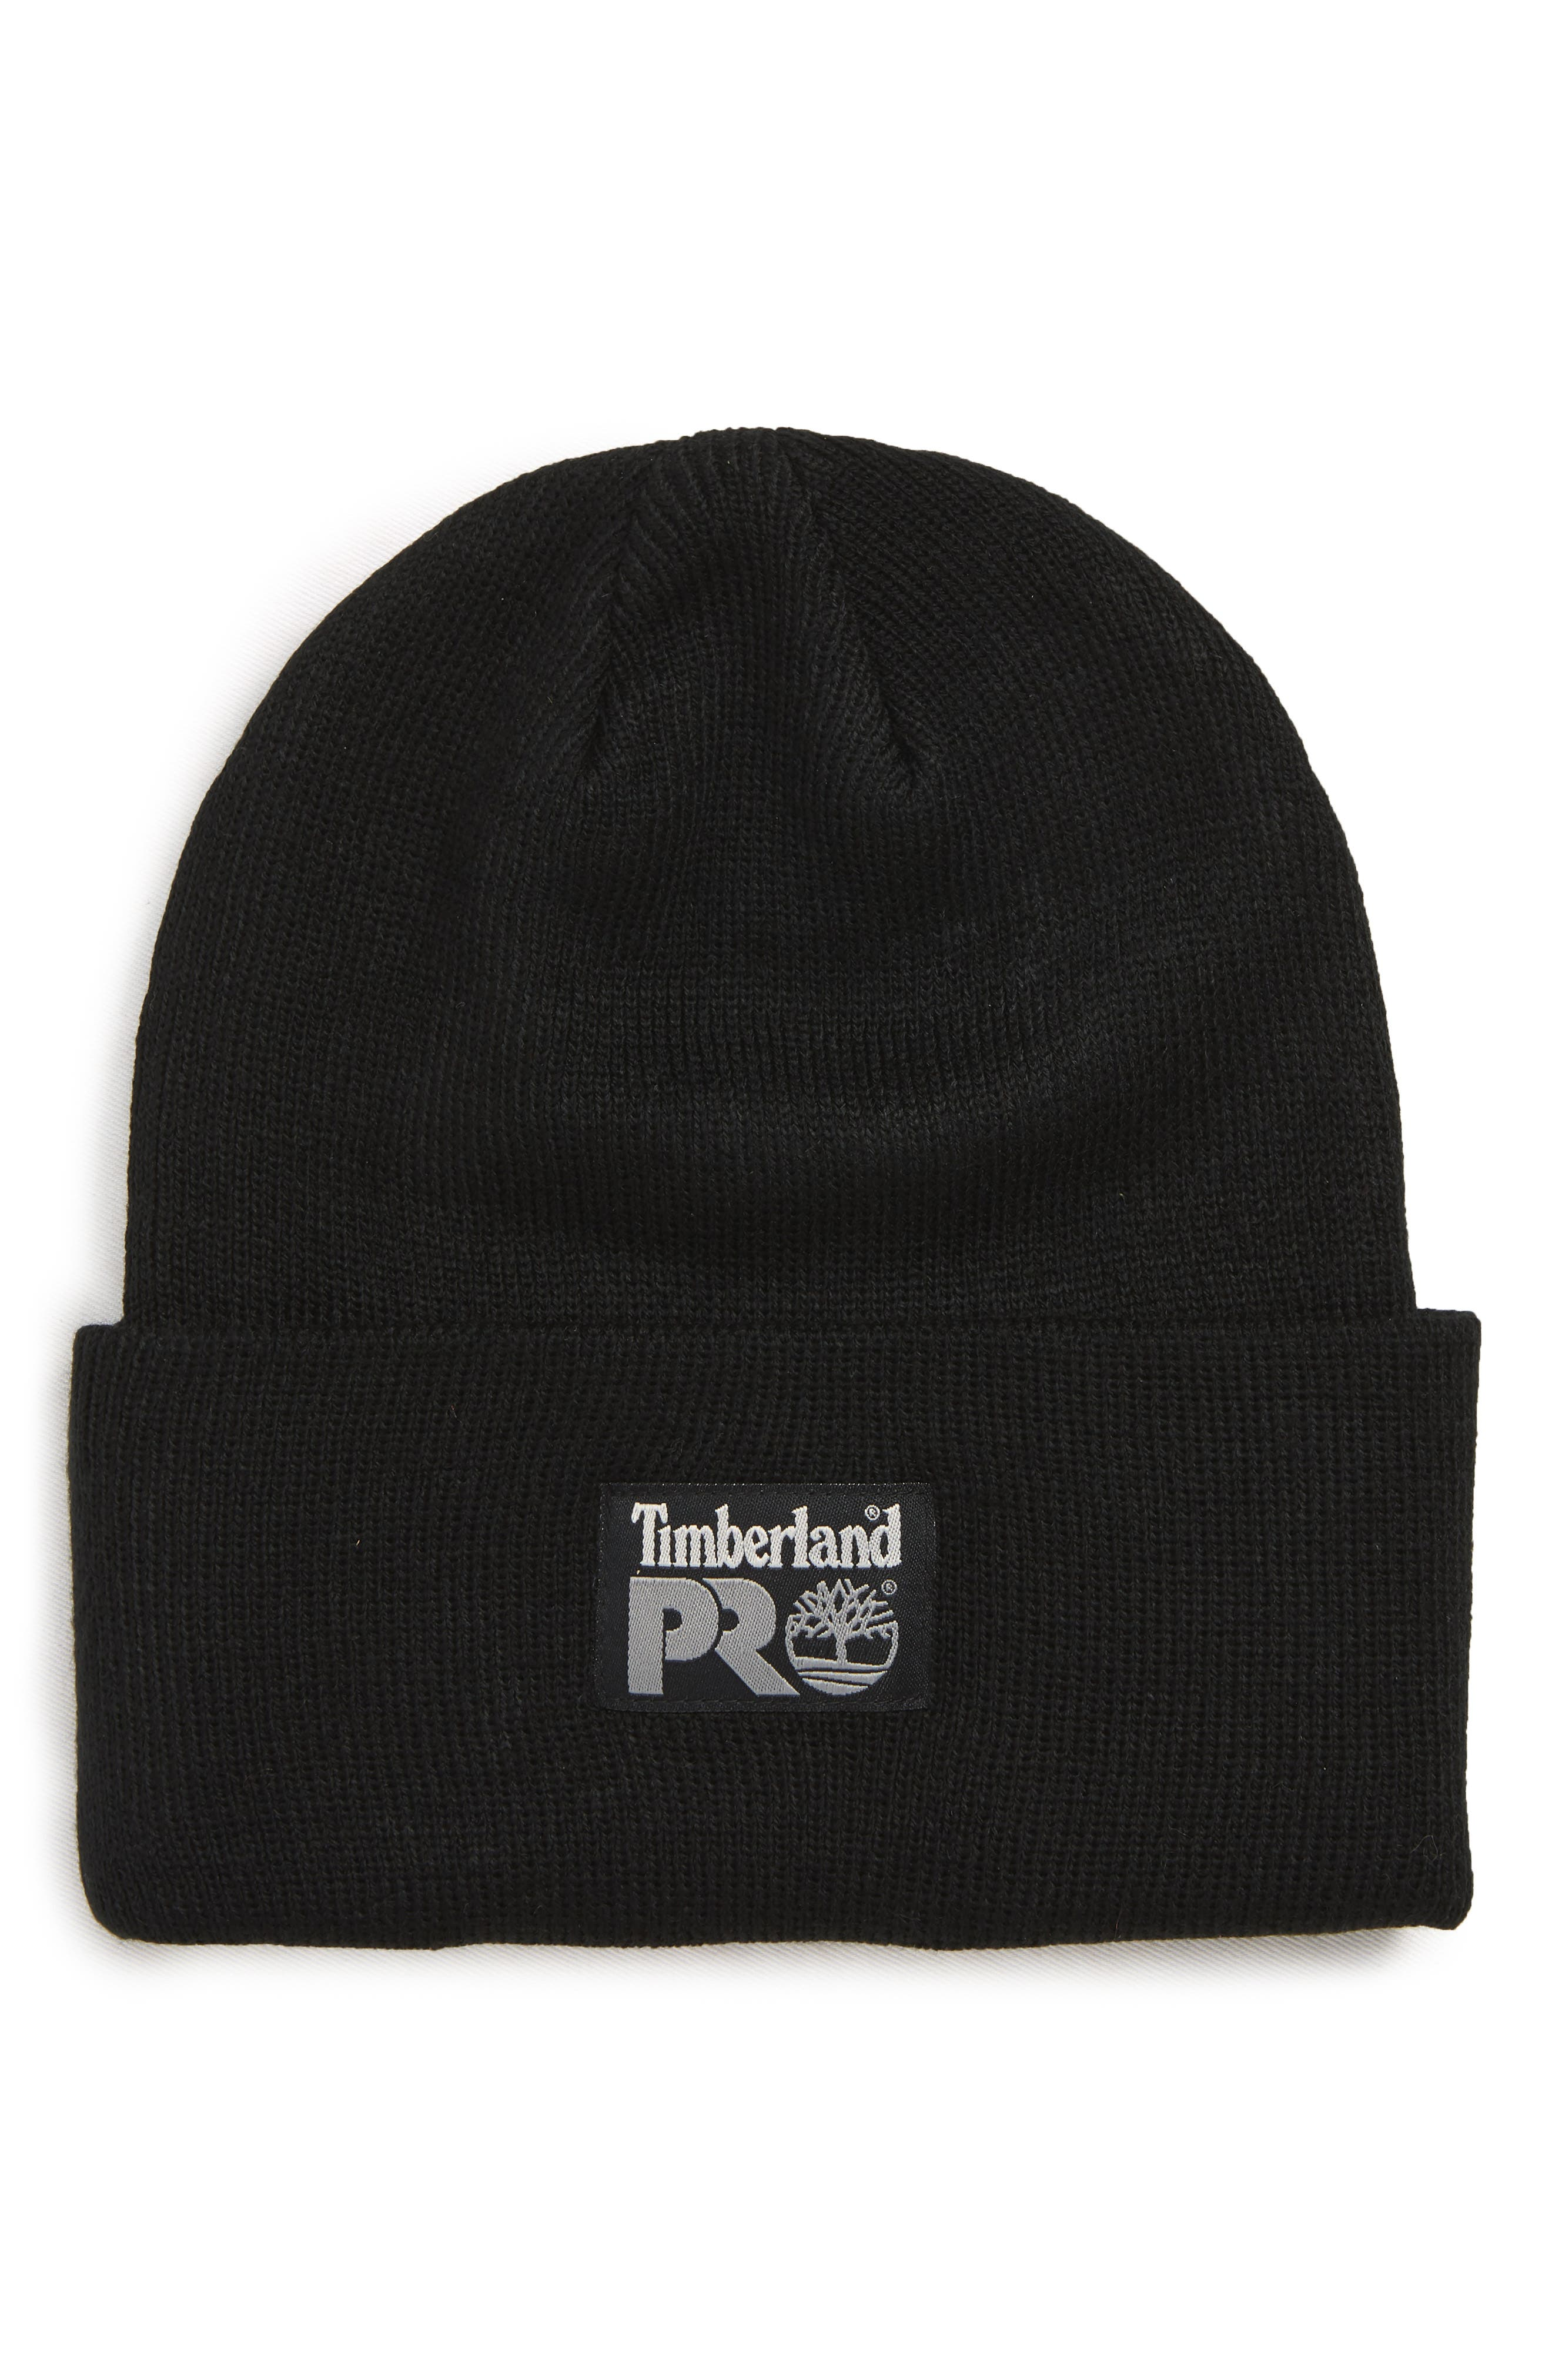 TIMBERLAND, Pro Logo Patch Beanie, Main thumbnail 1, color, BLACK